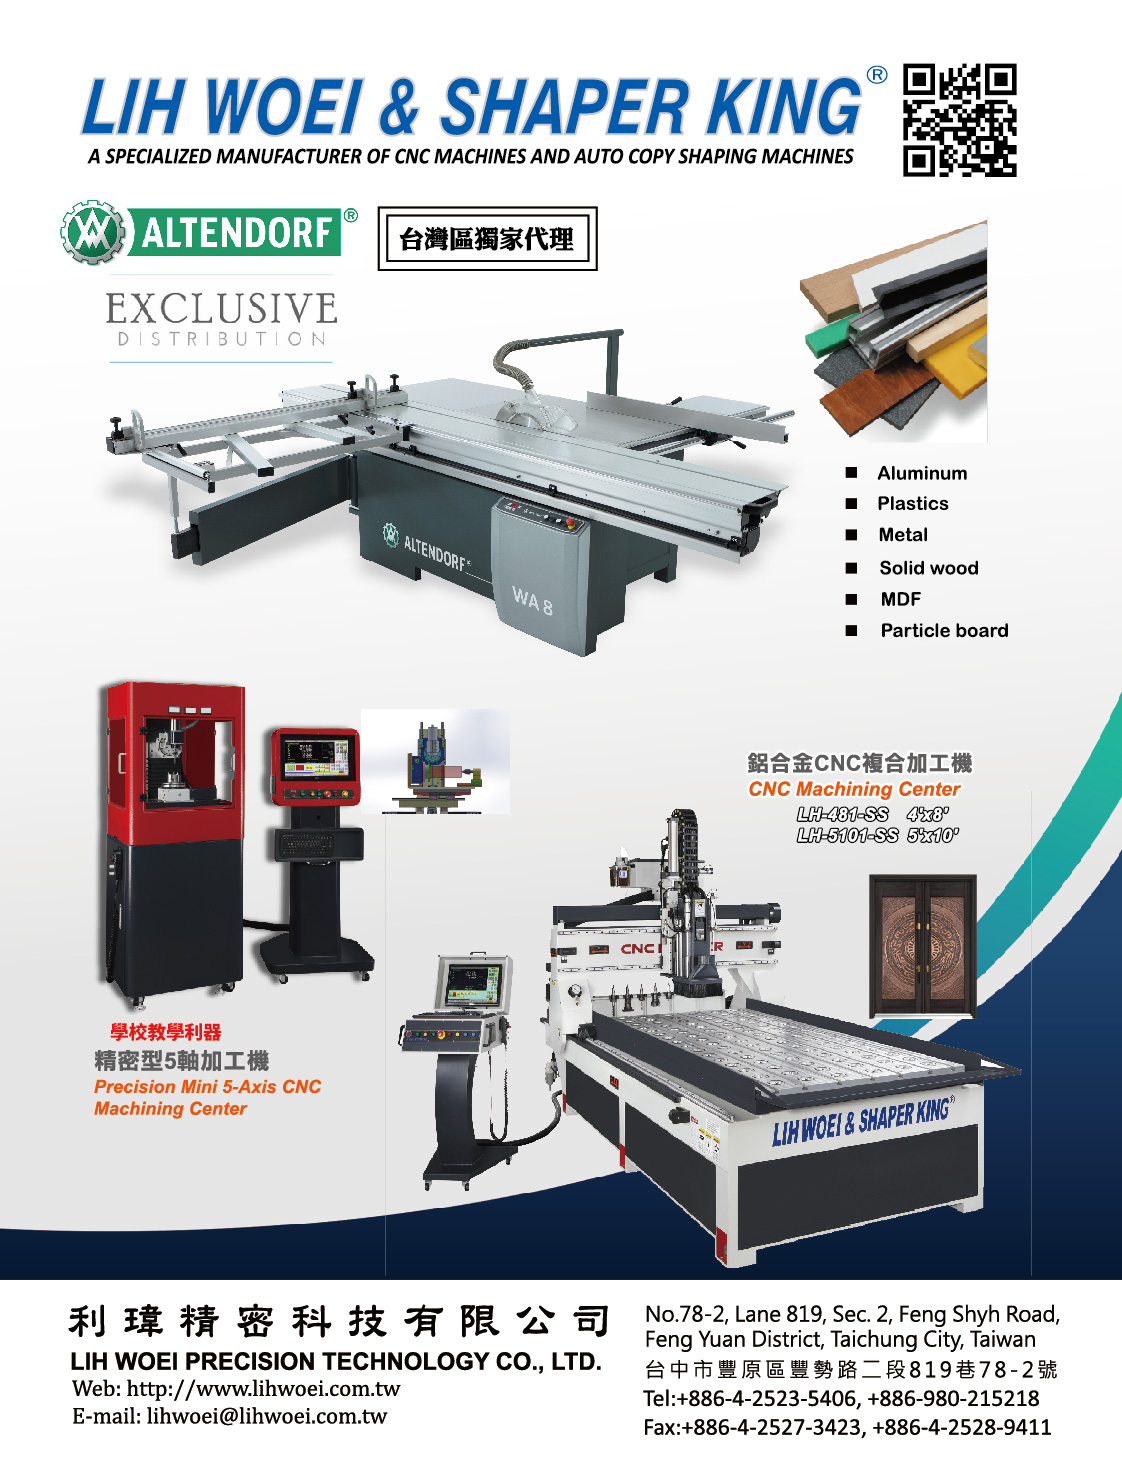 LIH WOEI PRECISION TECHNOLOGY CO., LTD